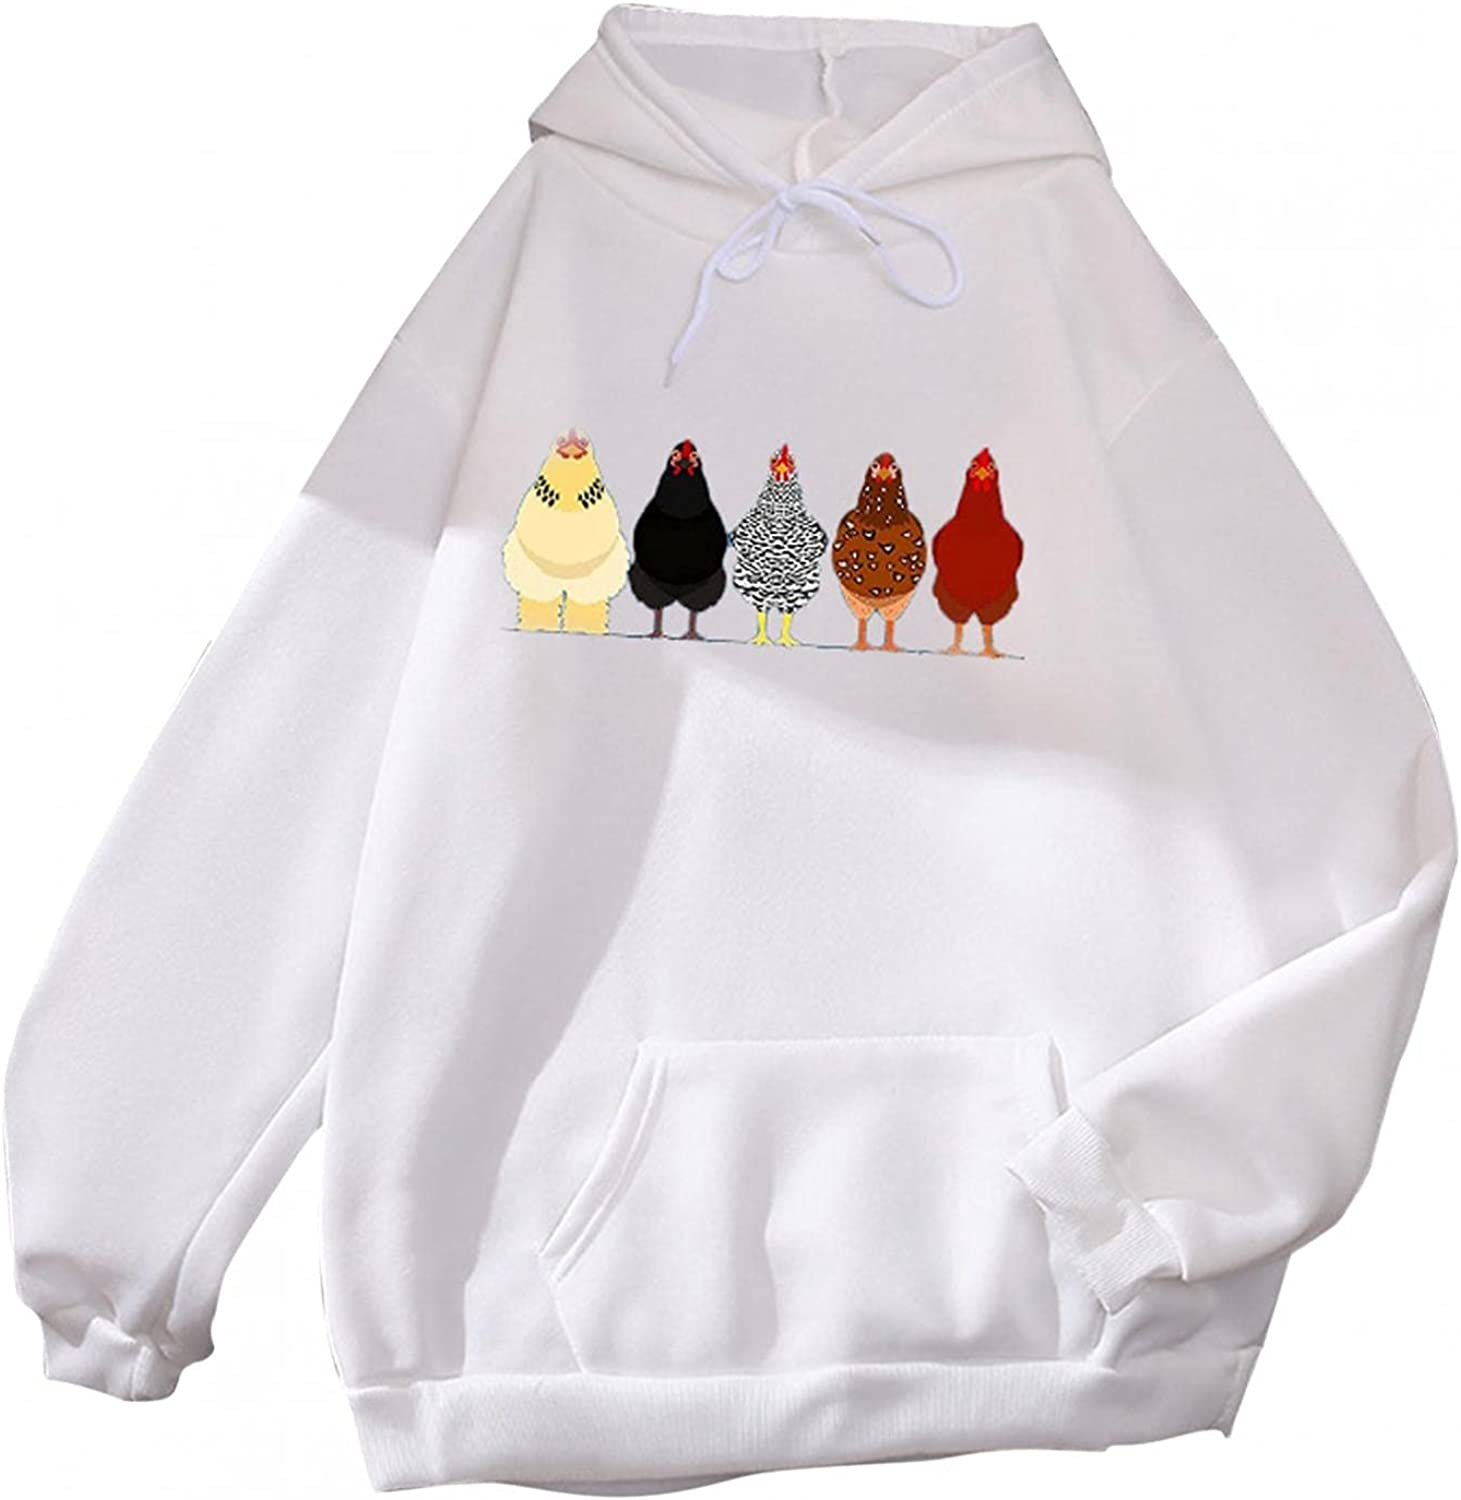 lucyouth Hoodies for Women Teens Girls Long Sleeve Casual Chicken Pocket Cute Winter Clothes Pullover Sweatshirt Tops